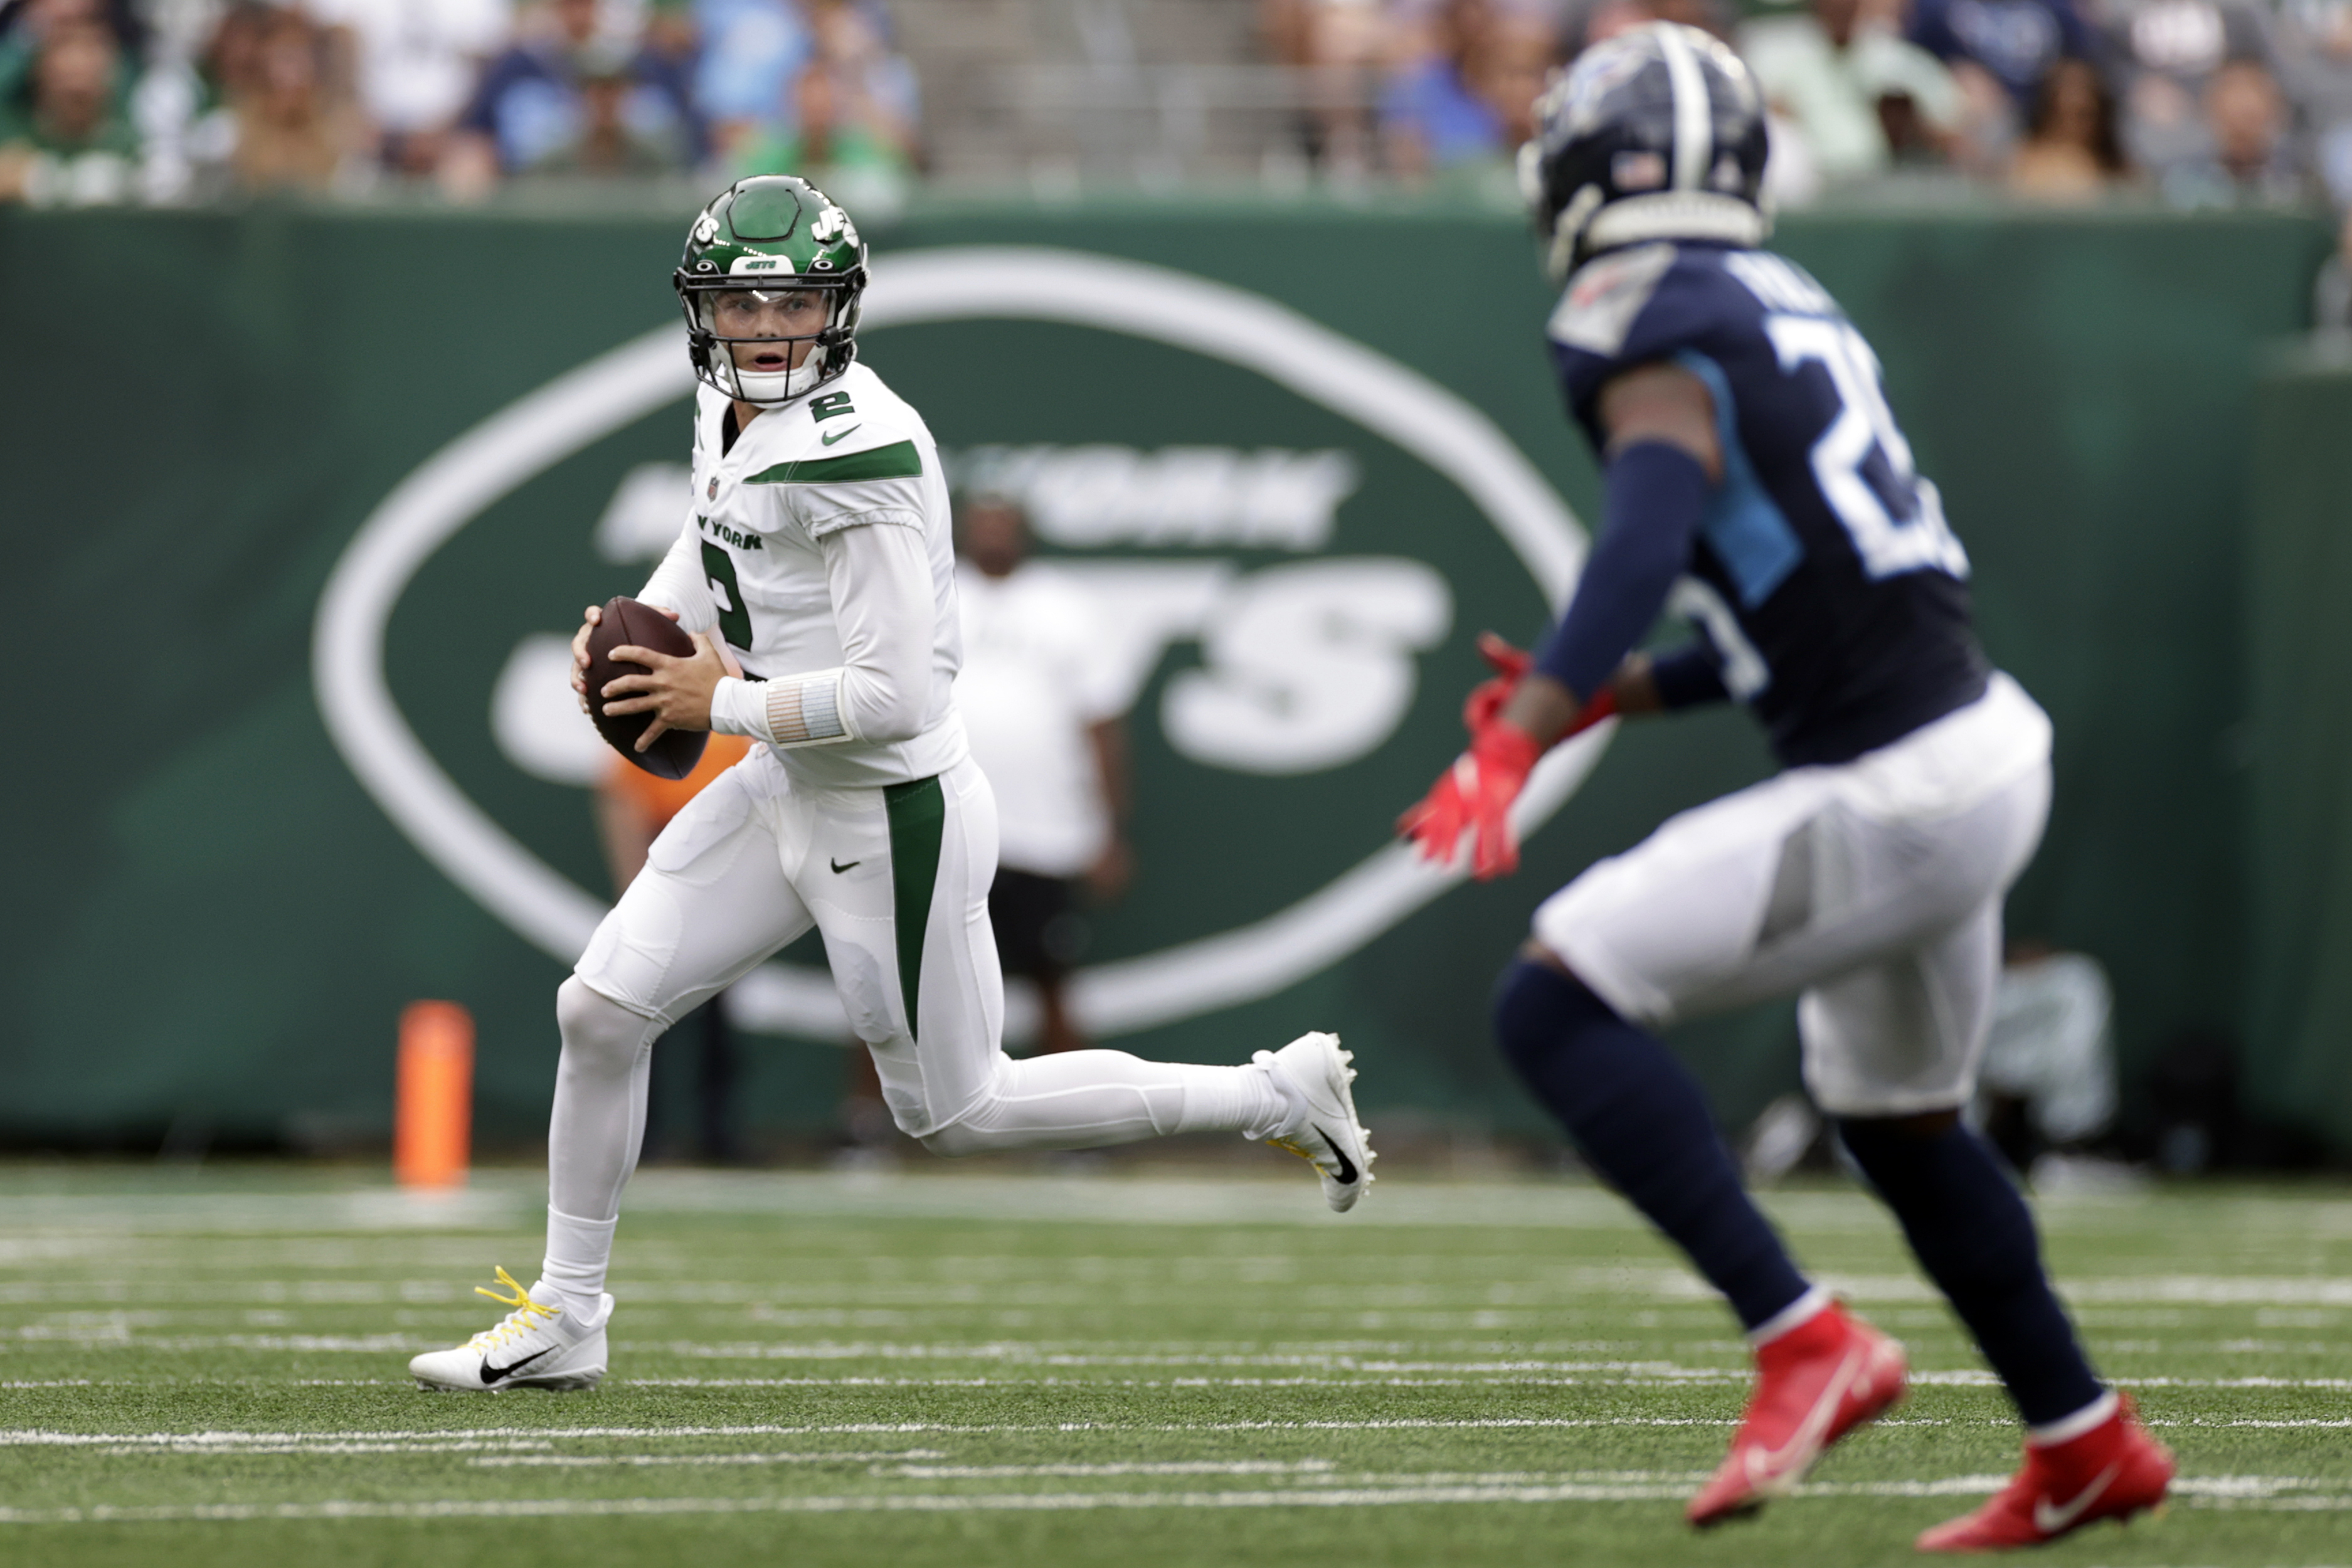 New York Jets quarterback Zach Wilson (2) passes against the Tennessee Titans.